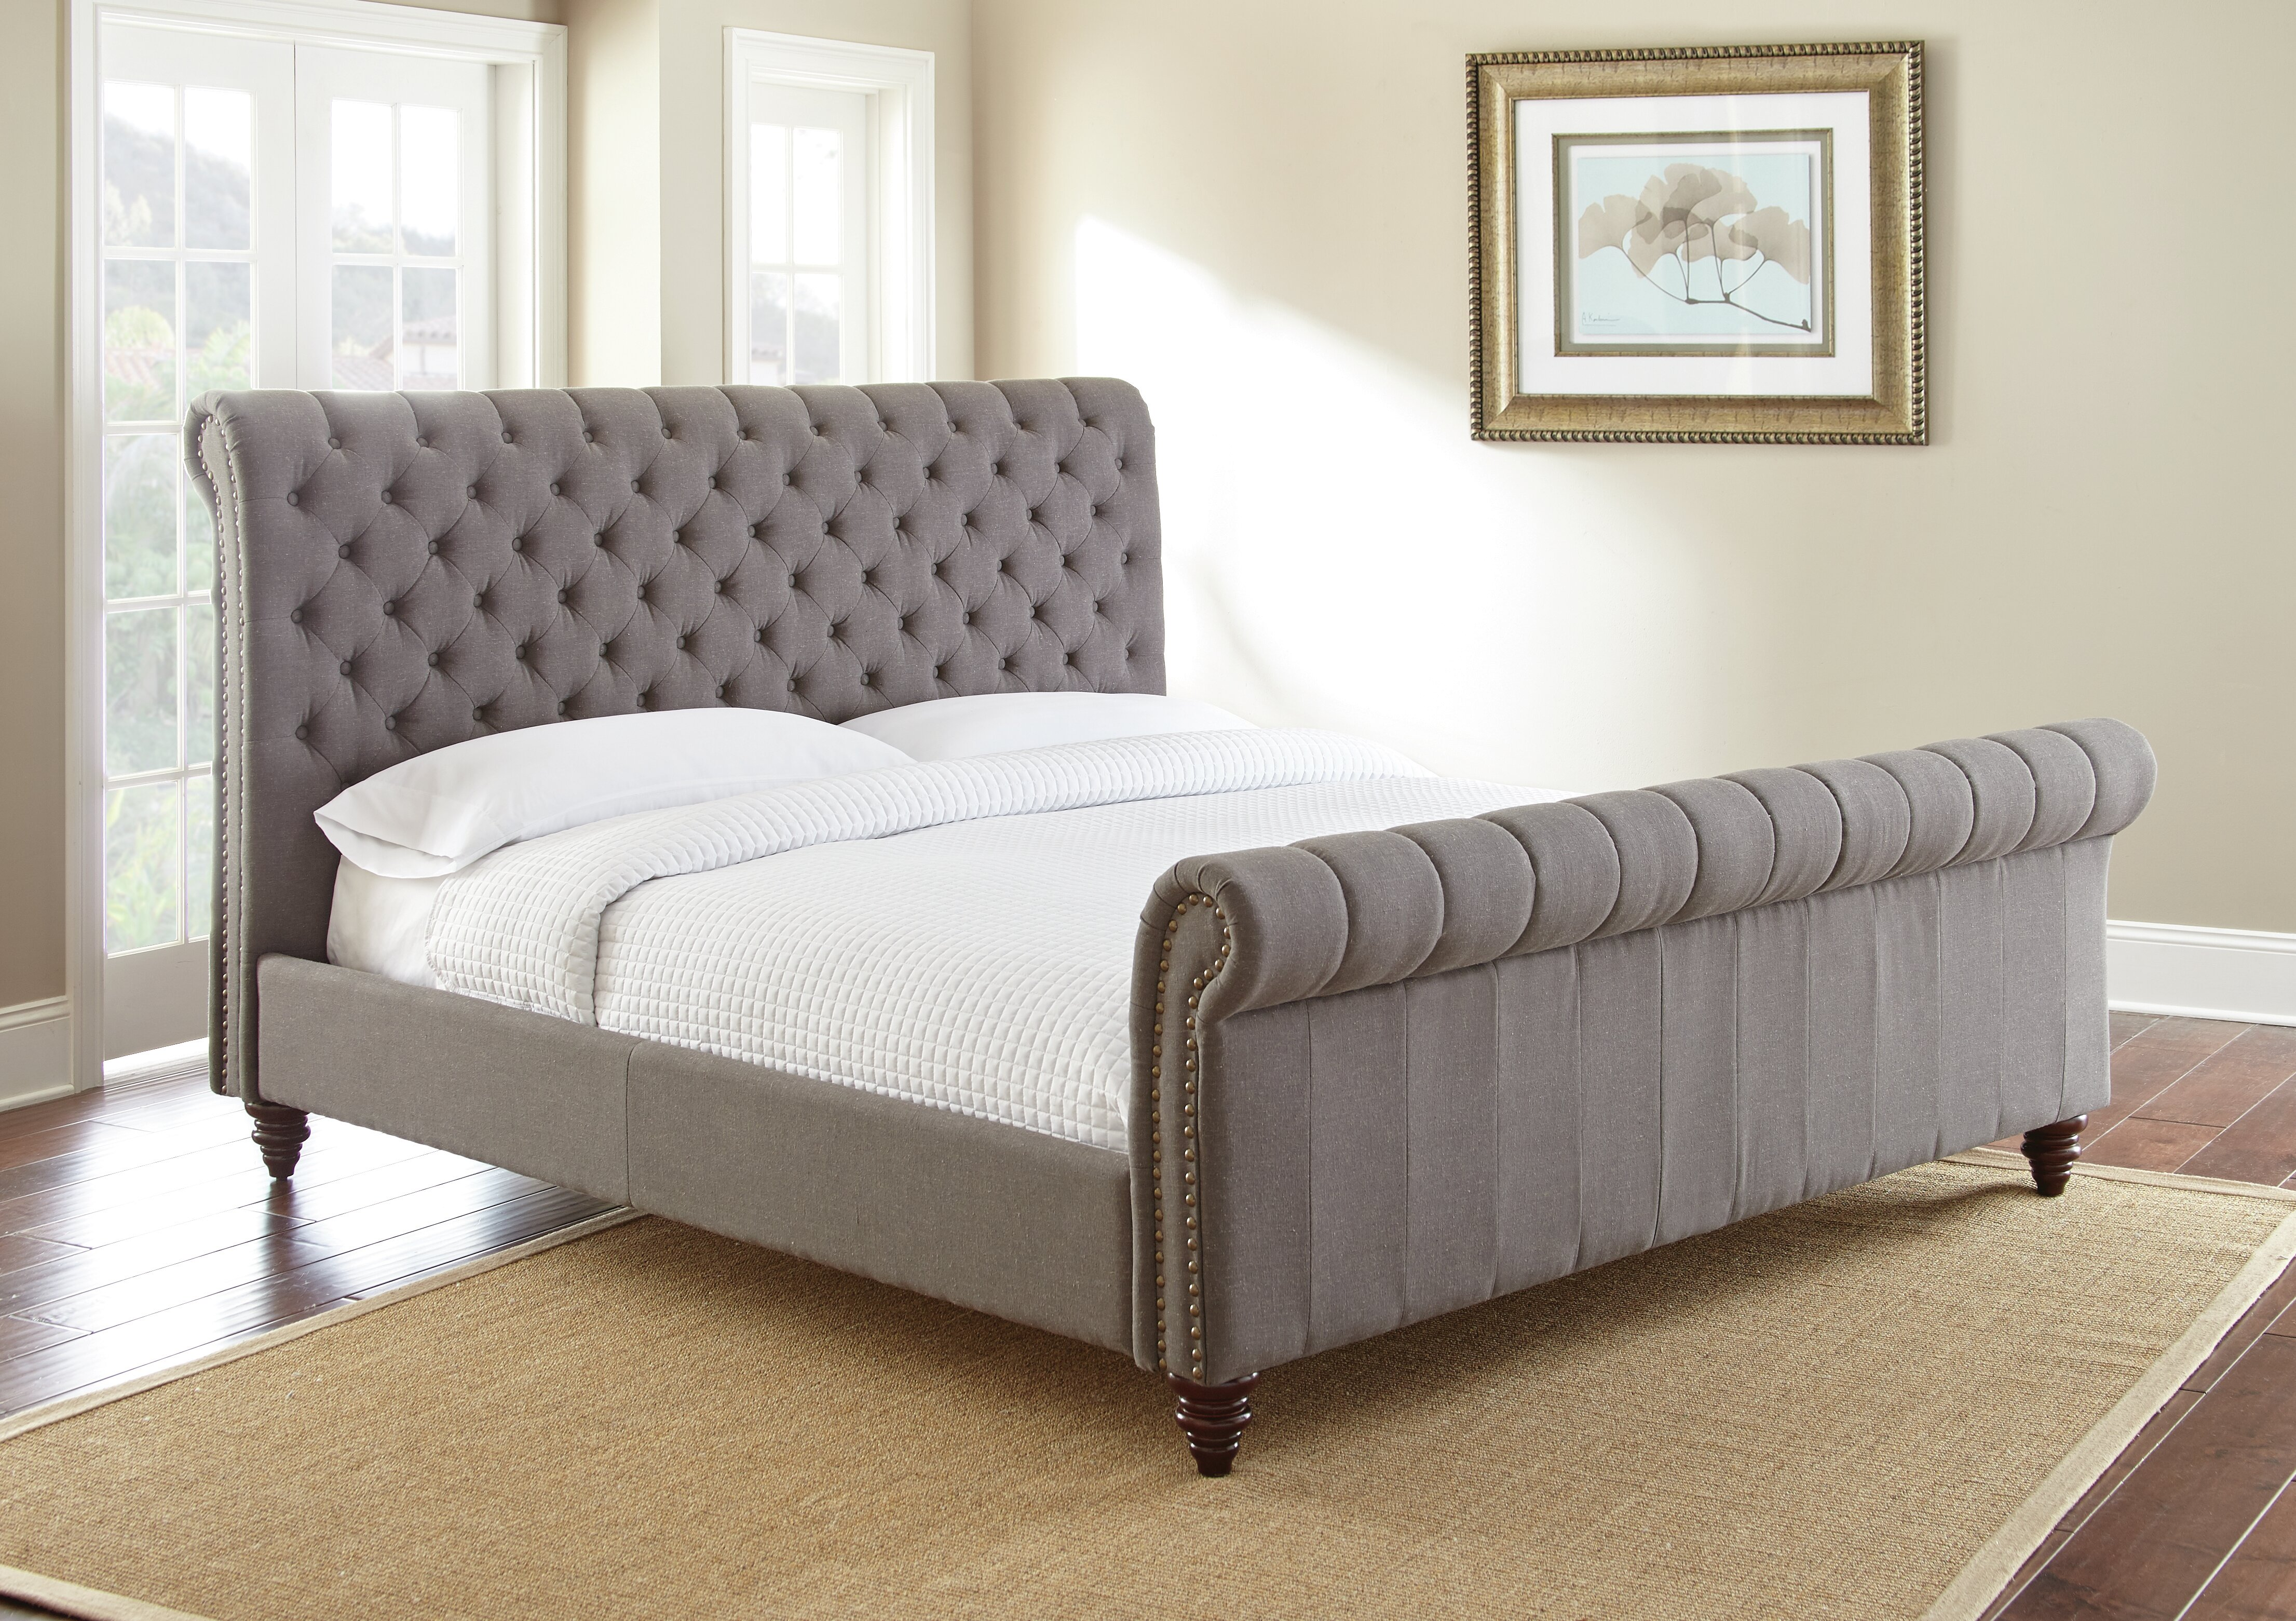 Darby Home Co Swanson King Bed Grey Reviews Wayfair Ca